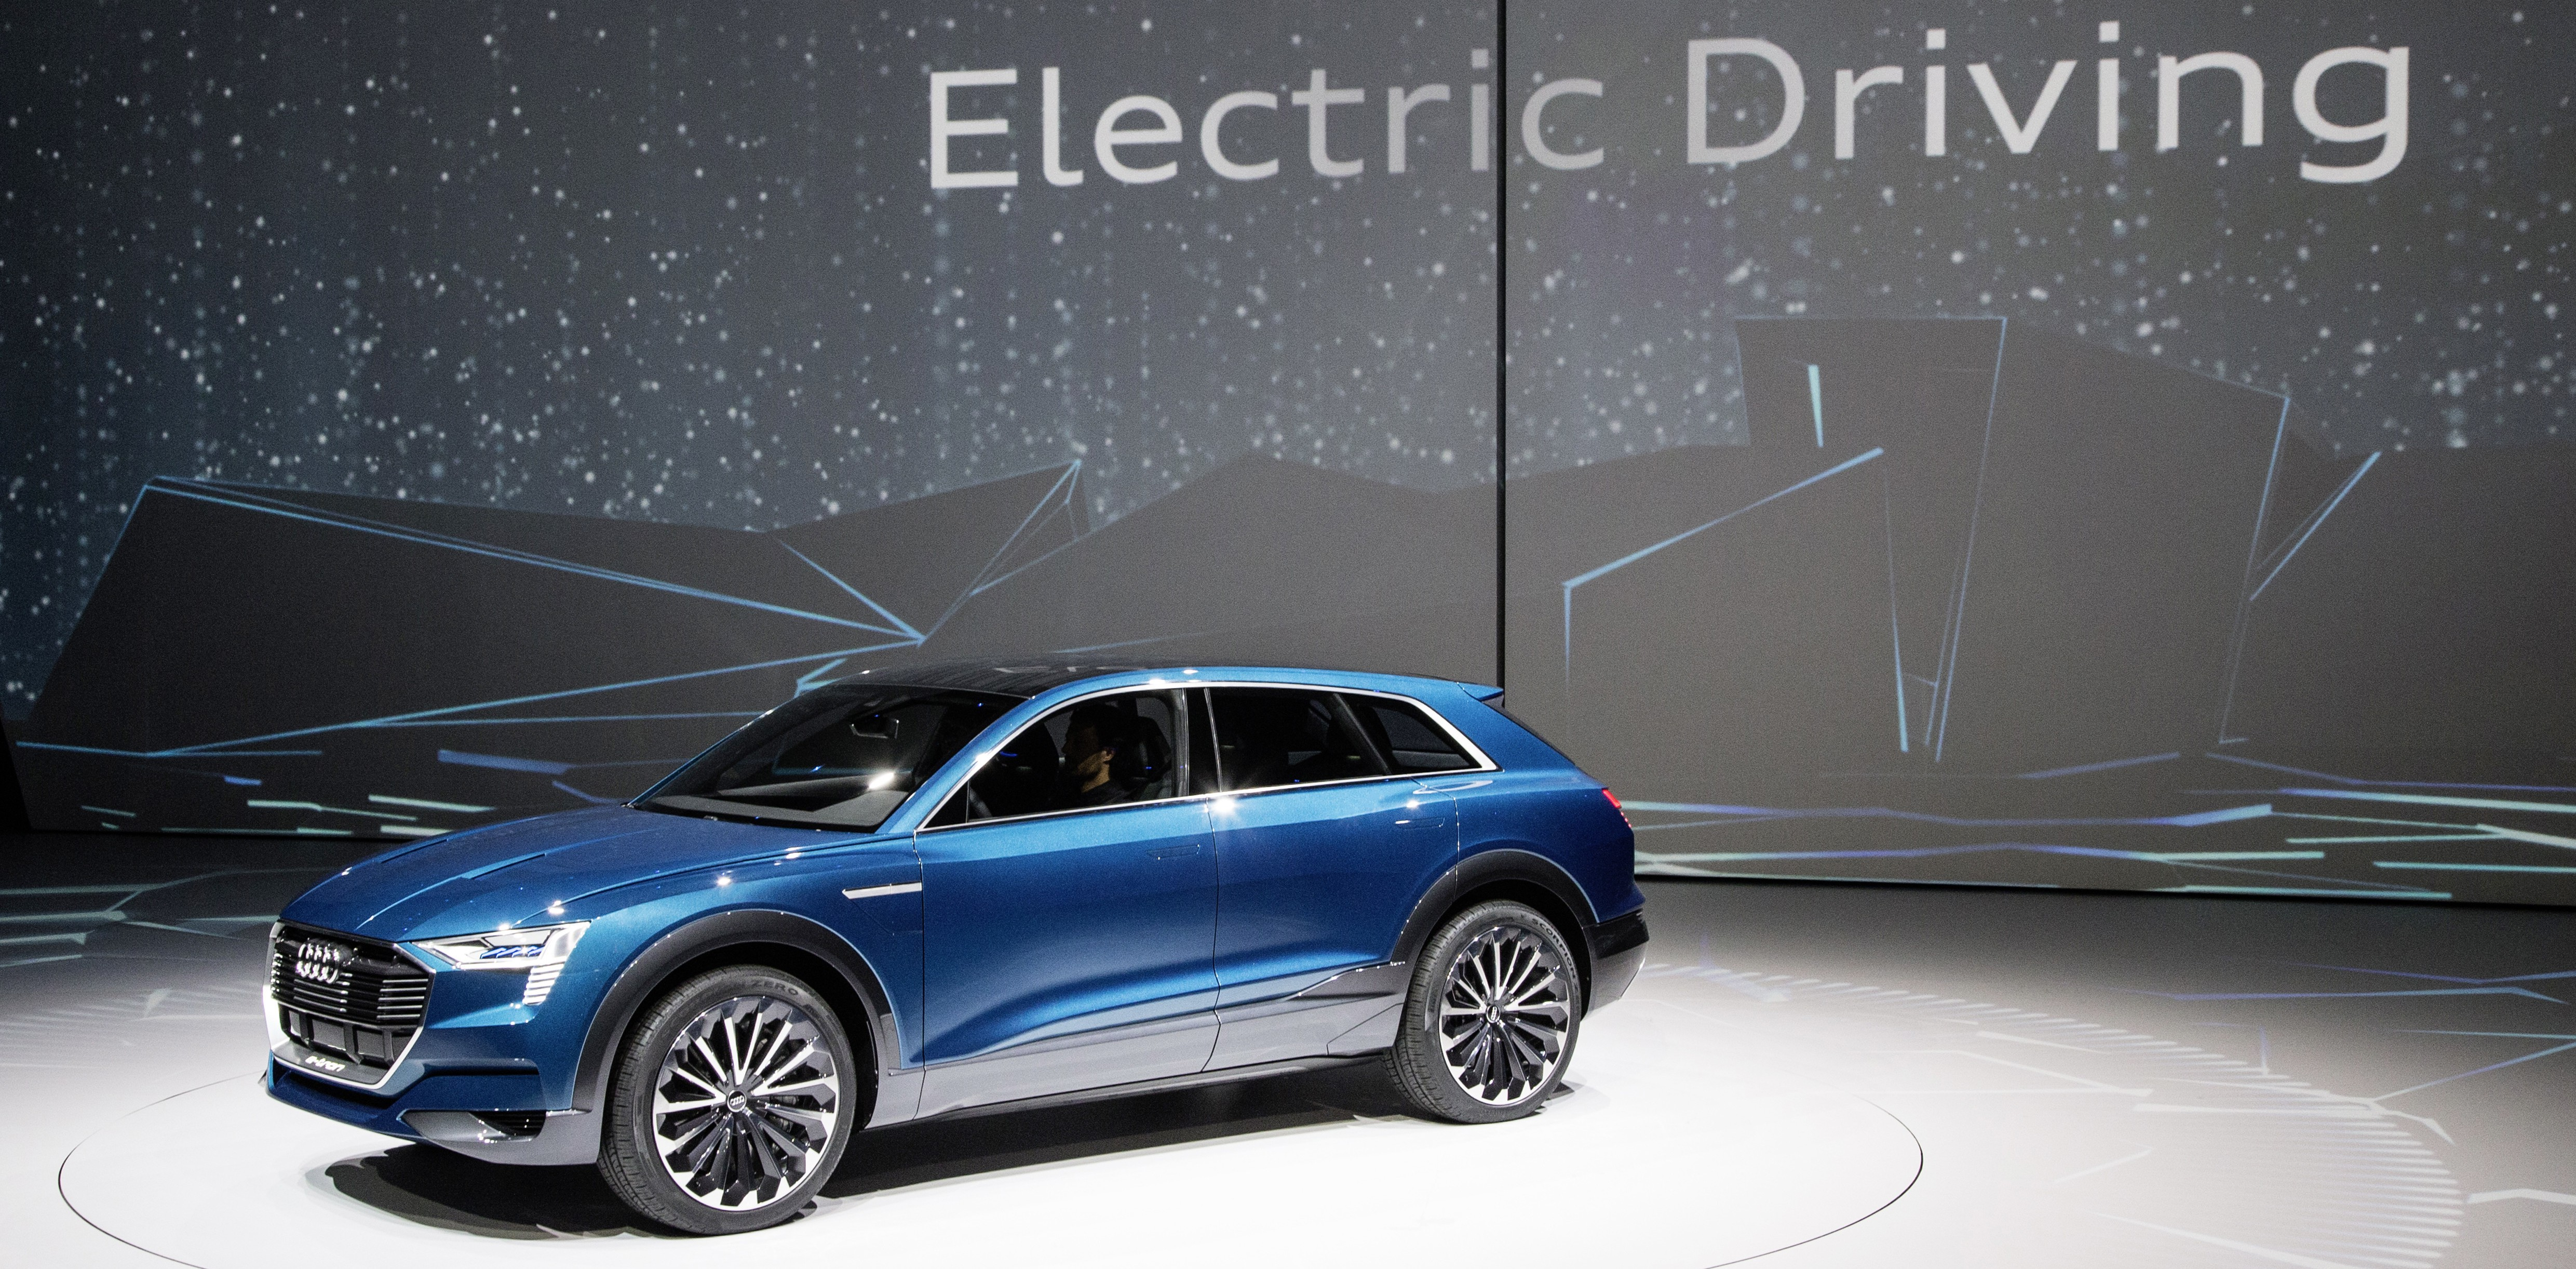 Audi Plans To Release An Electric Sports Car And Electric Compact After The  Quattro E Tron SUV